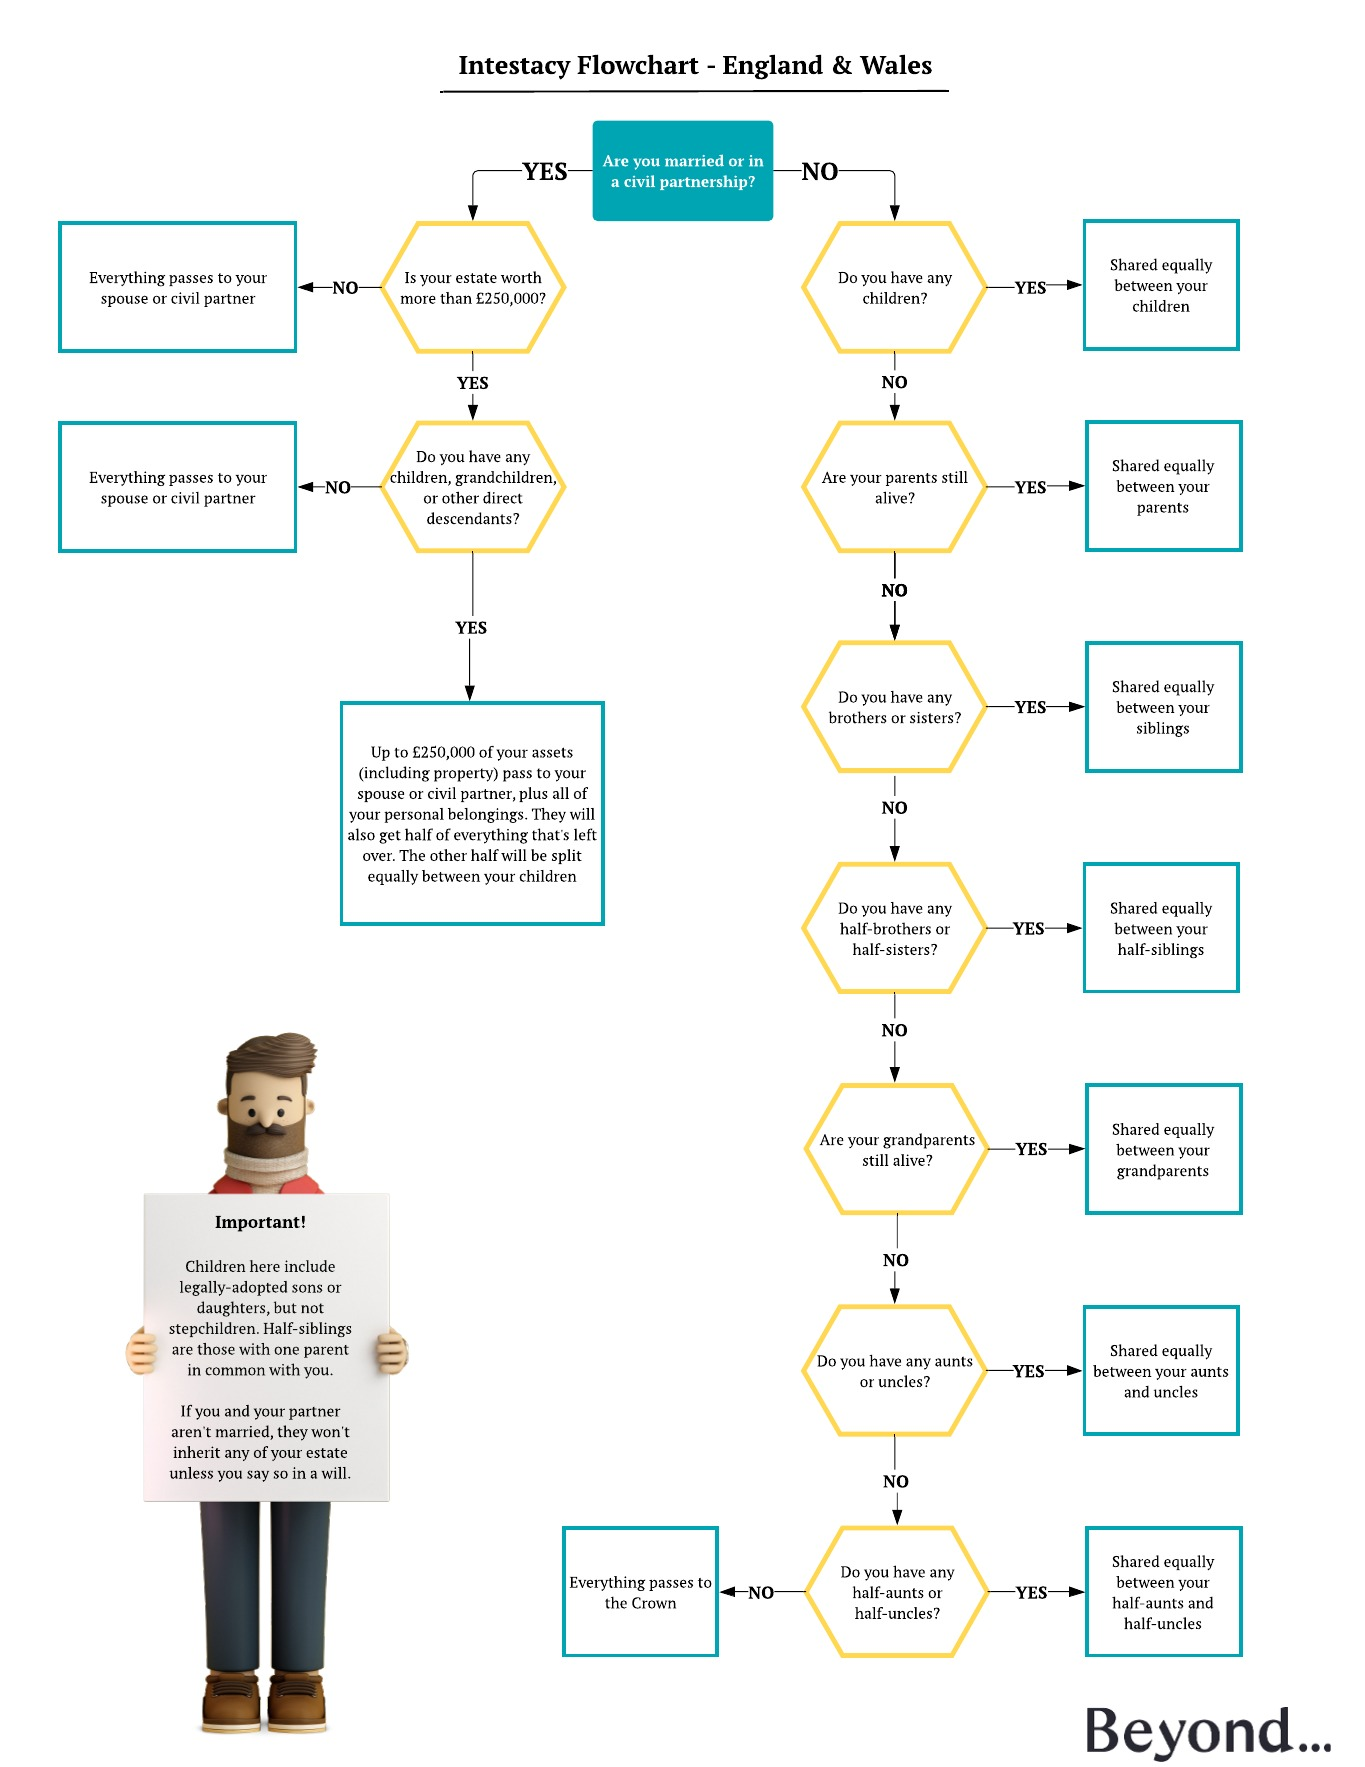 Intestacy rules flowchart UK England and Wales